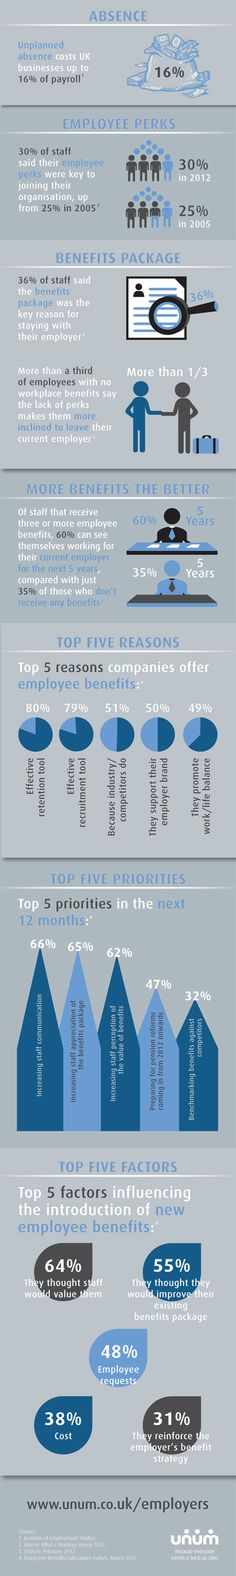 Key HR facts that all finance directors should know